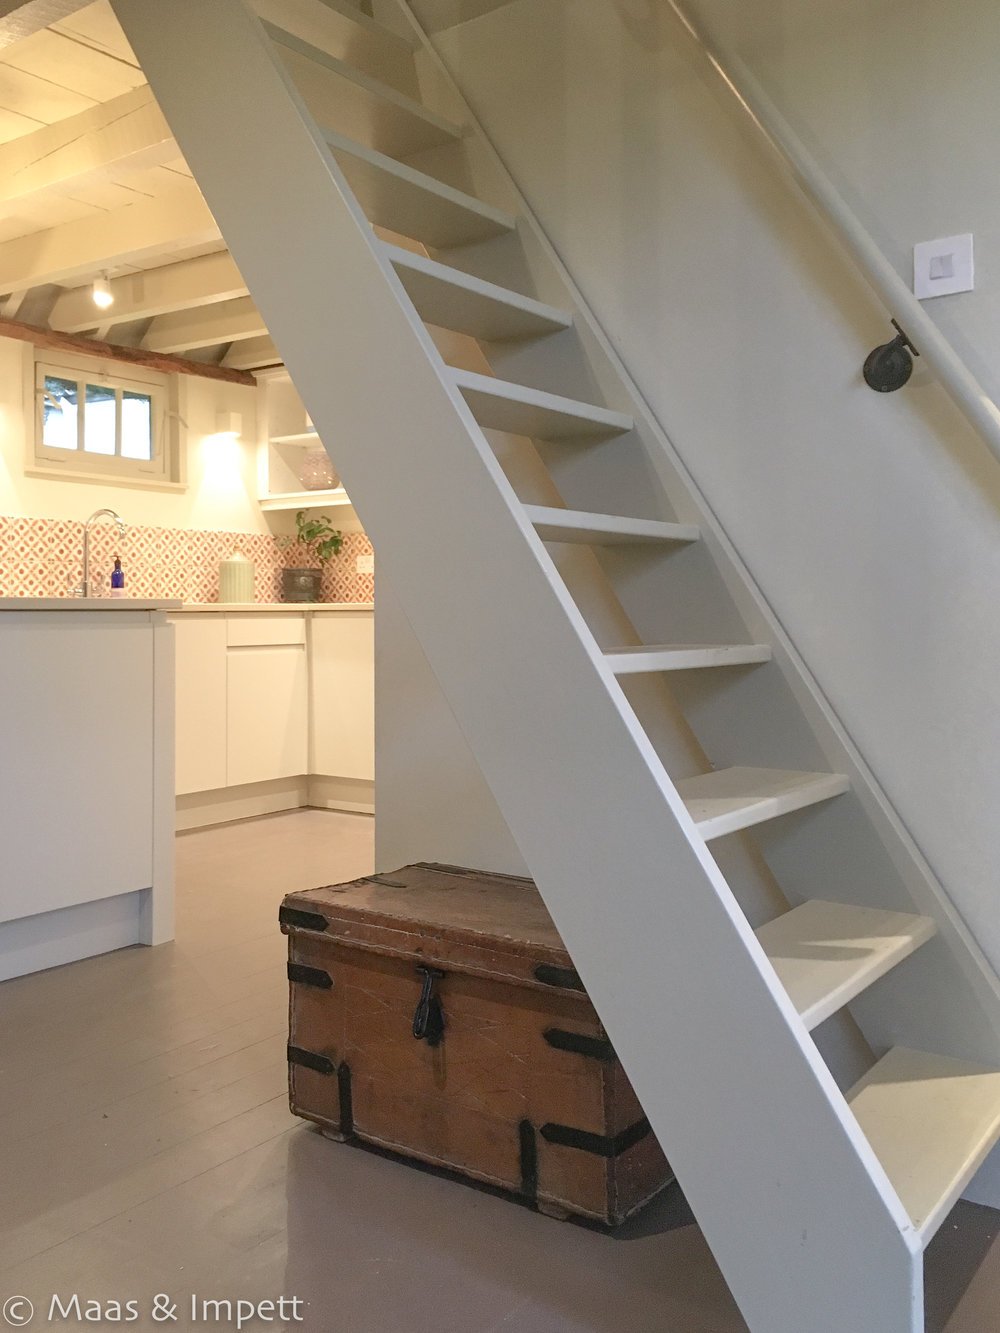 Bespoke Carpentry by trusted loacal tradesmen